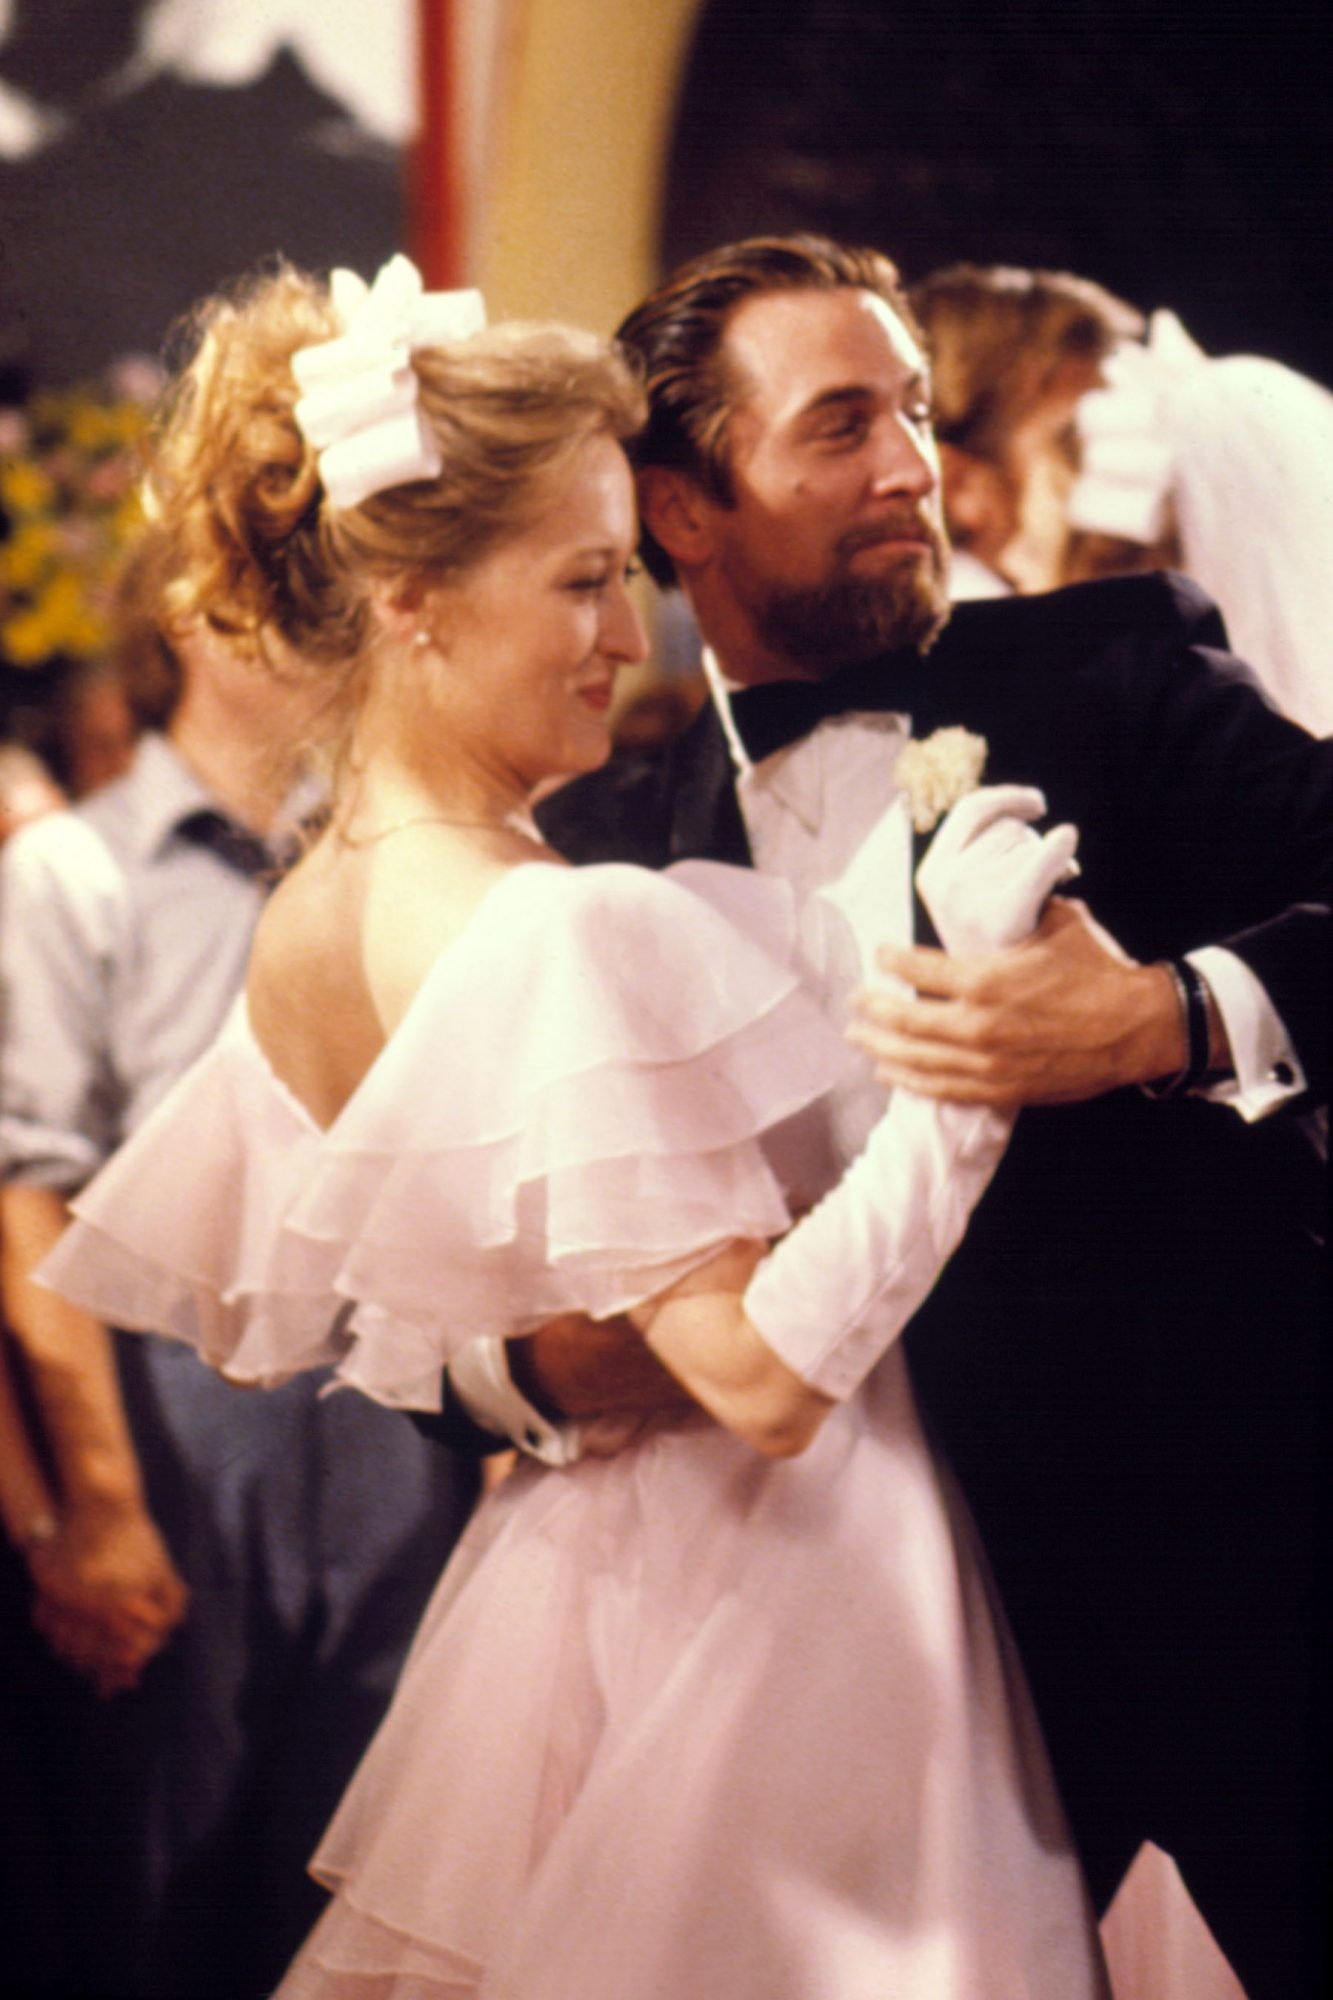 THE DEER HUNTER, Meryl Streep, Robert De Niro, 1978, (c) Universal/courtesy Everett Collection